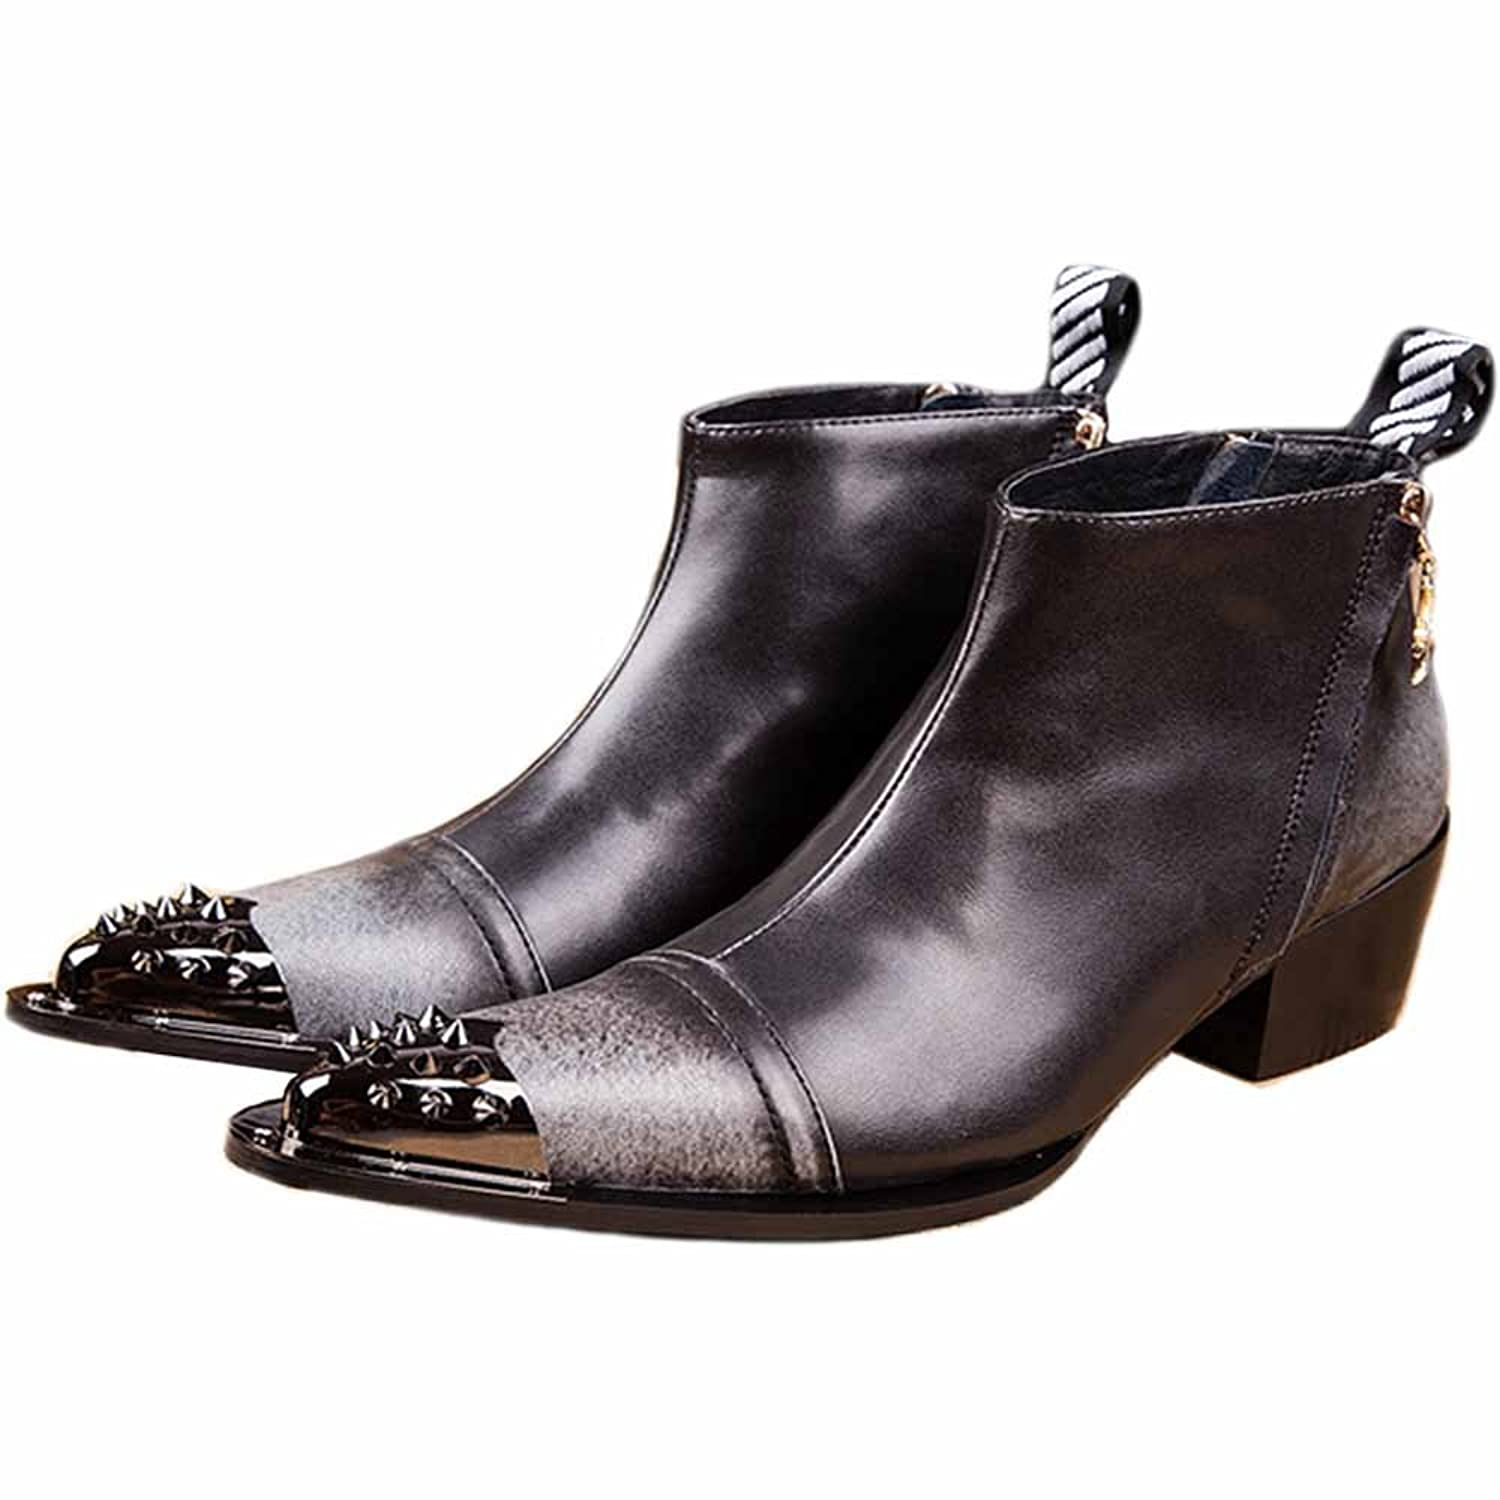 55mm Two Tone Leather Ankle Boots Rivet Shoes Punk Fashion Shoes